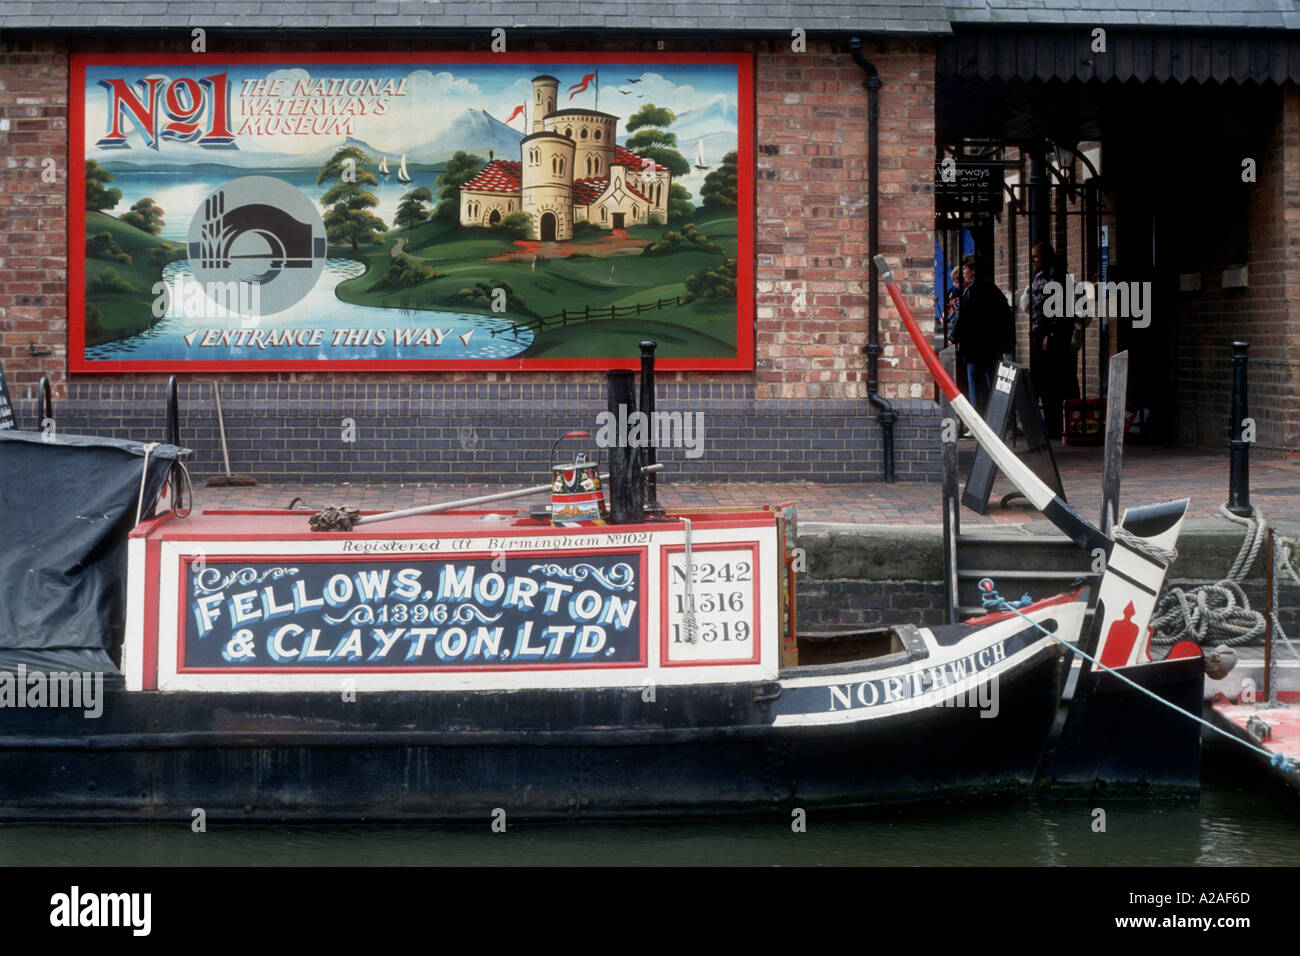 1898 Fellows Morton and Clayton butty Northwich at the National Waterways Museum Gloucester Gloucestershire England UK - Stock Image